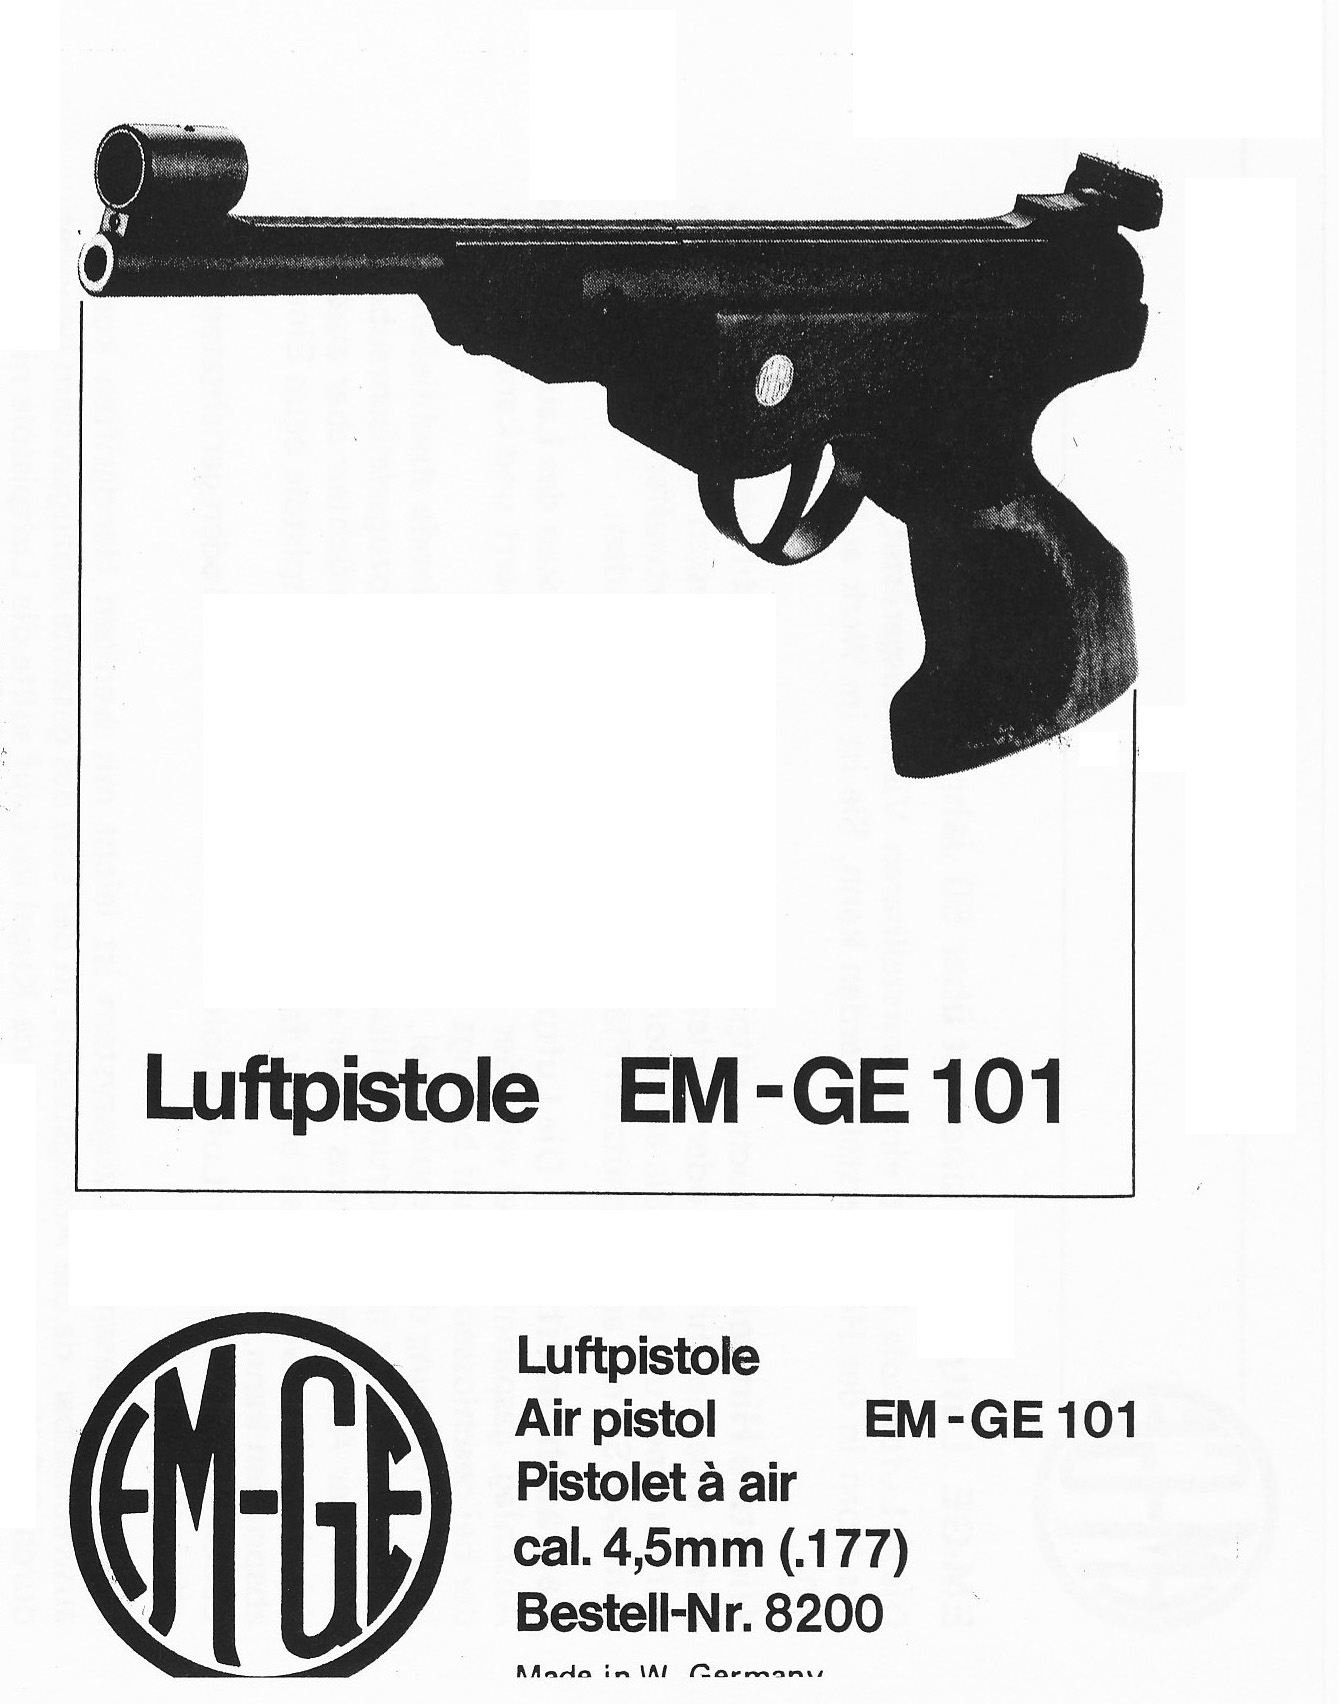 E101OM DOWNLOAD EM-GE Owners manual for the model 101